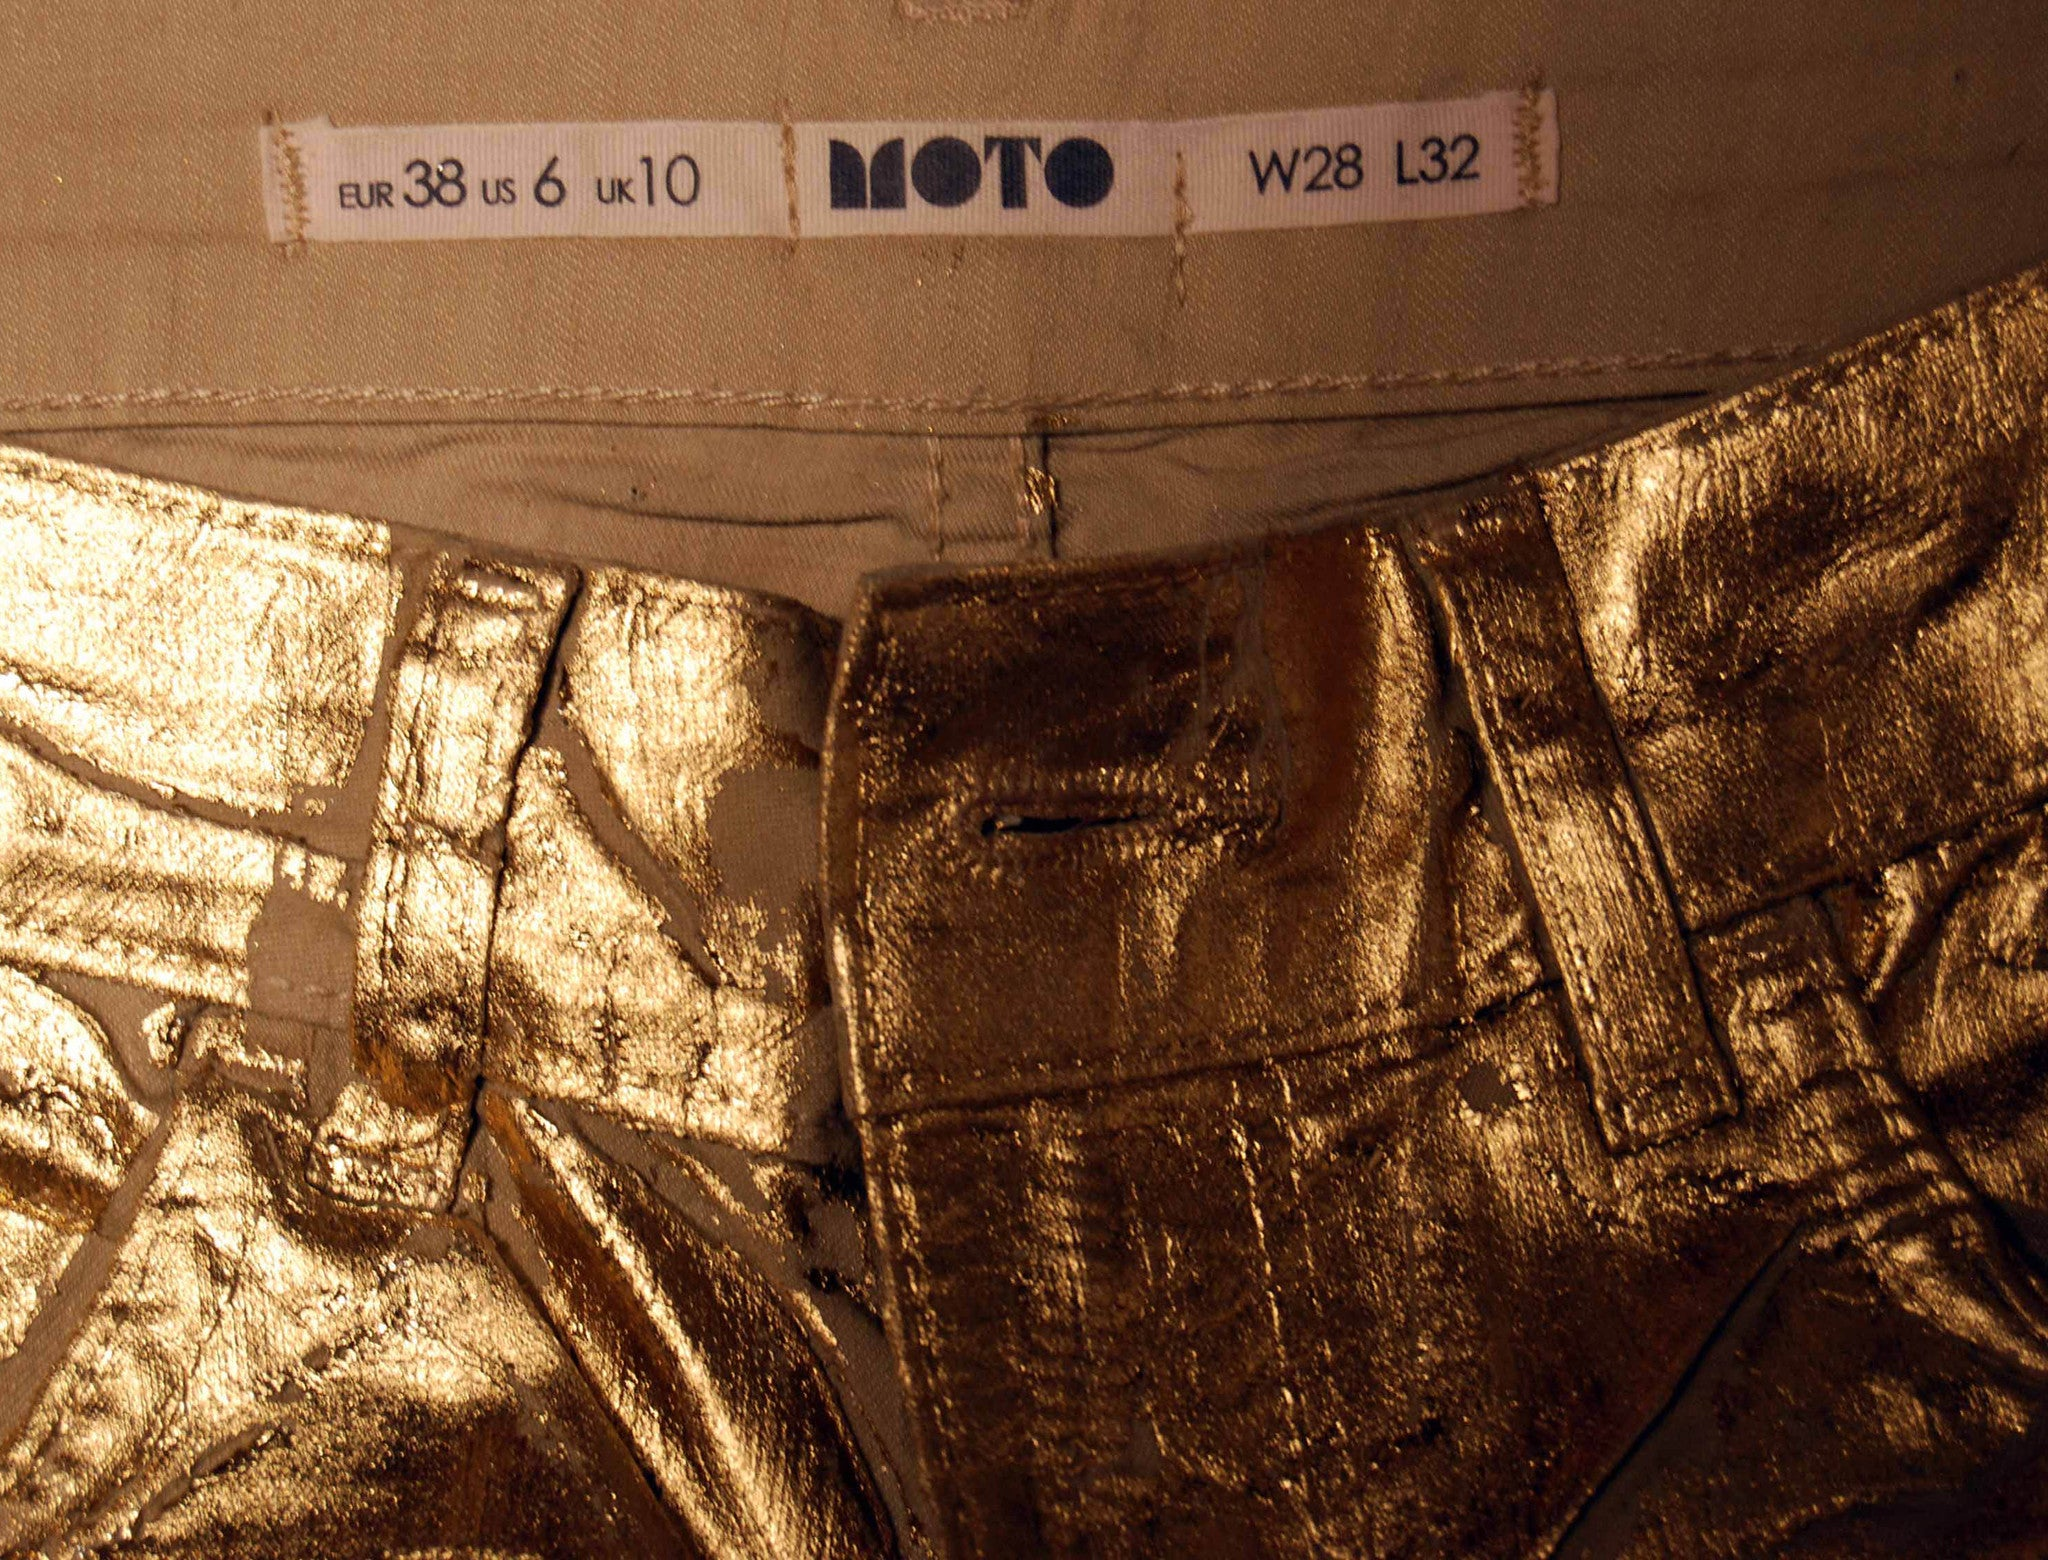 1e81fe1fab8efe Sold Out Moto Gold Foil Jeans - refashioner - 4 ...